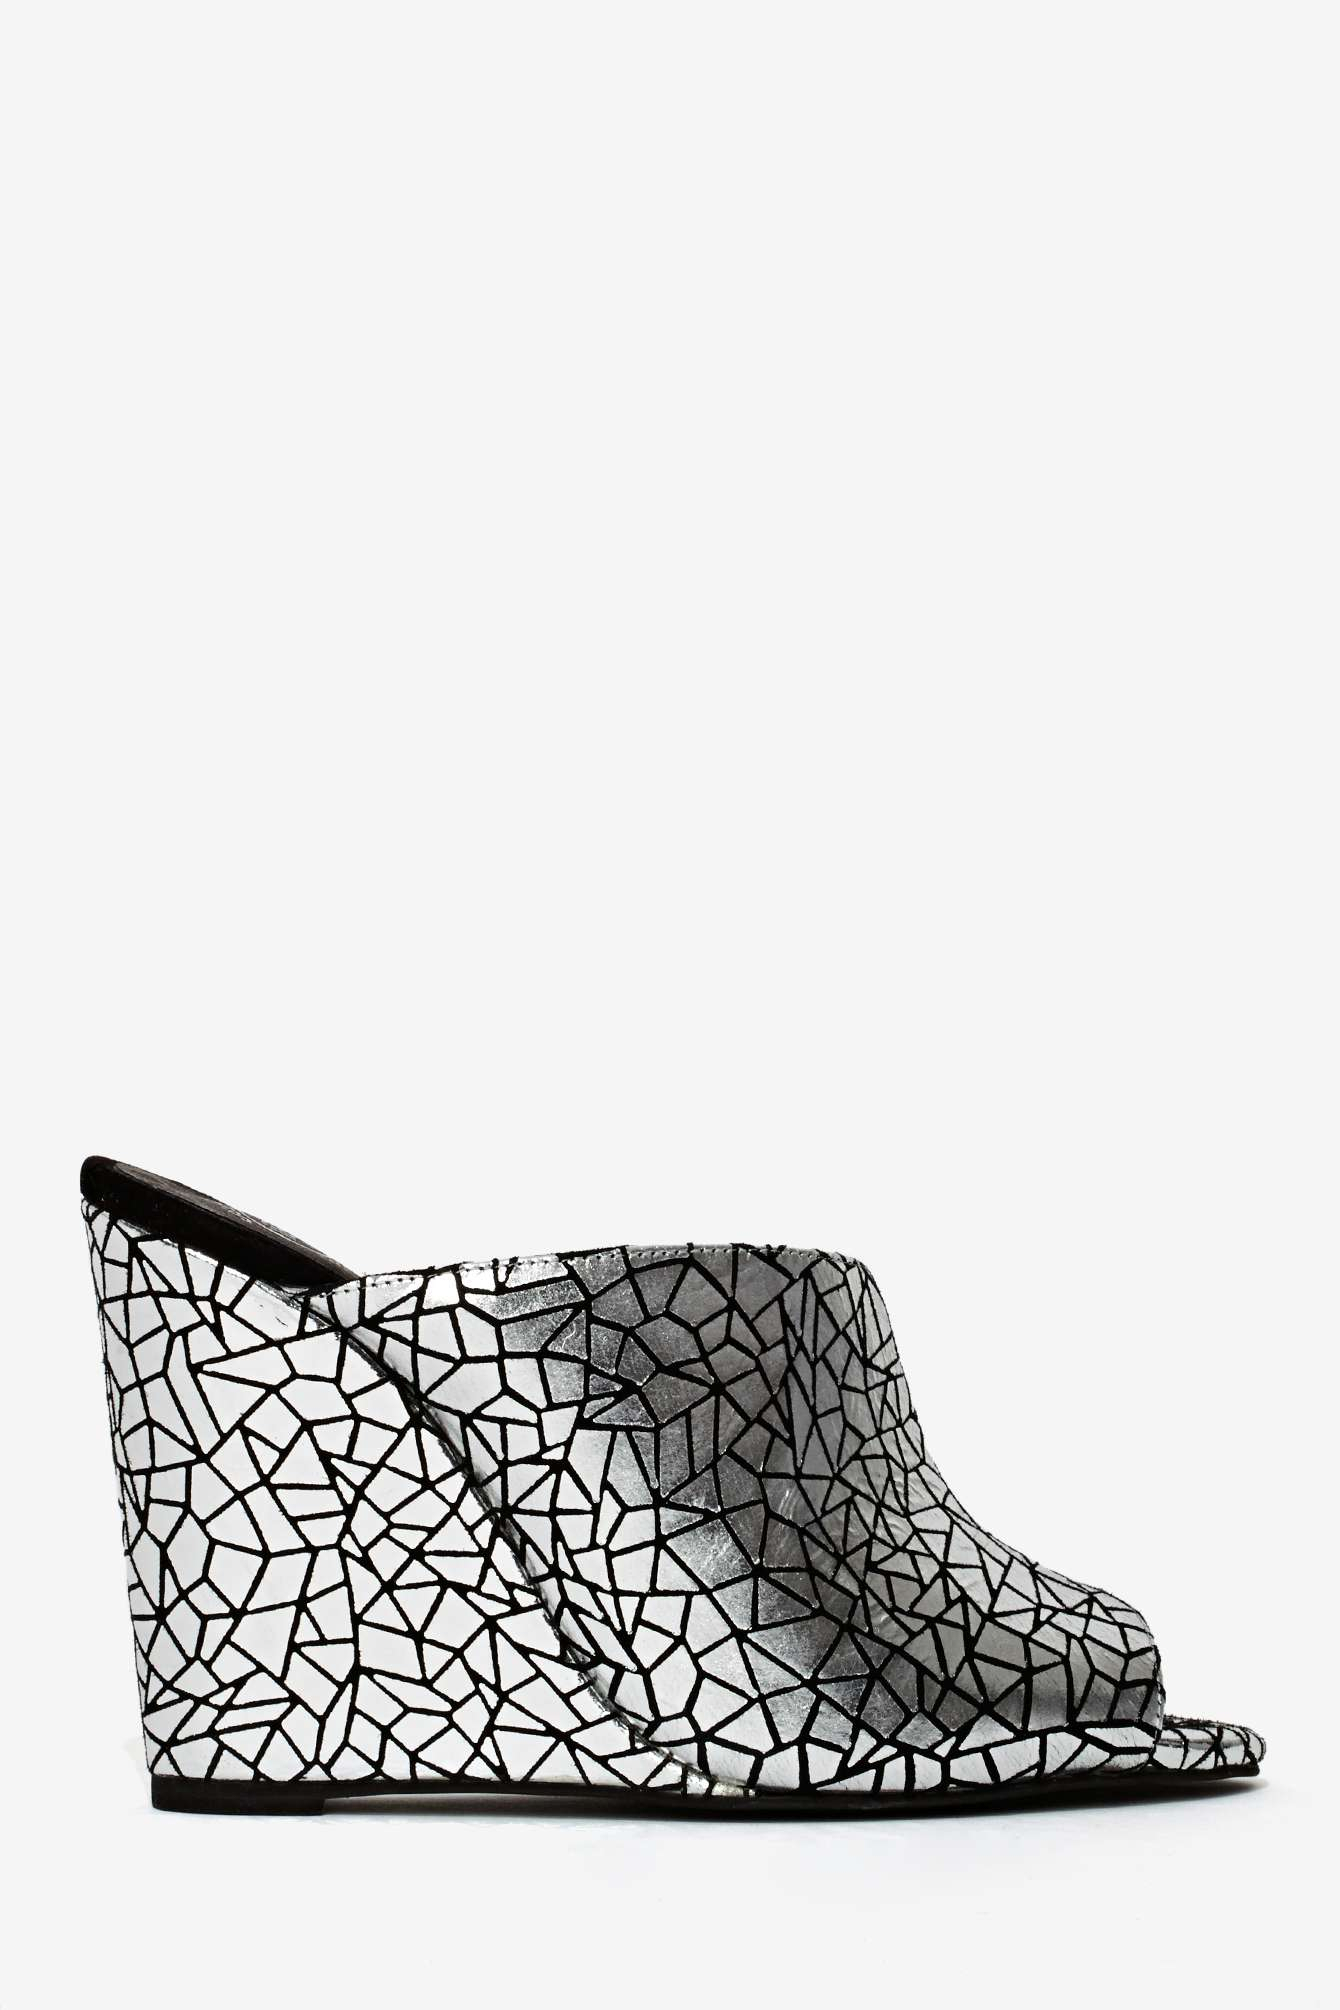 nasty gal jeffrey campbell jovie leather wedge silver in silver lyst. Black Bedroom Furniture Sets. Home Design Ideas